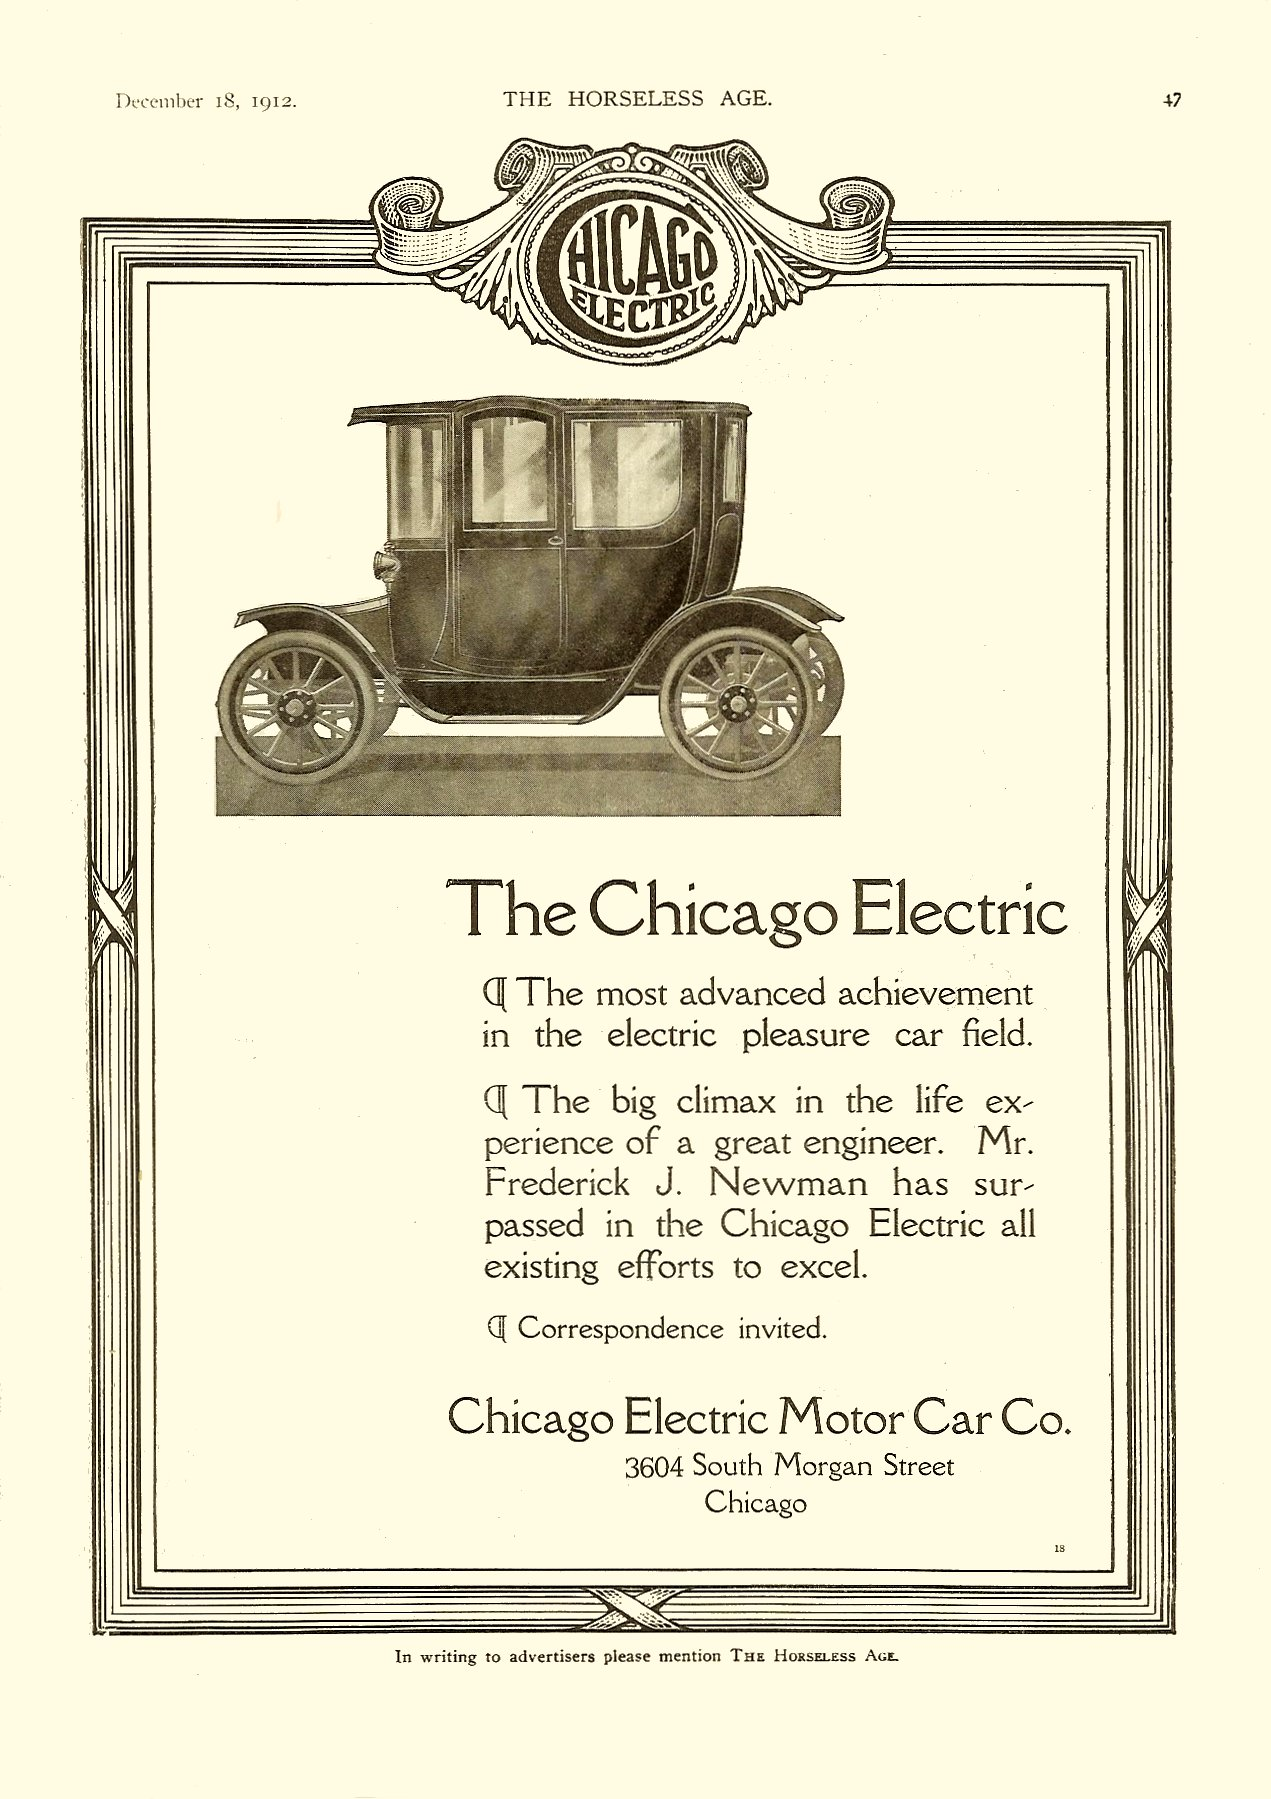 1913 12 18 The Chicago Electric Chicago Electric Motor Car Co. Chicago, Illinois THE HORSELESS AGE Vol. 30, No. 25 December 18, 1912 9″x12″ page 47